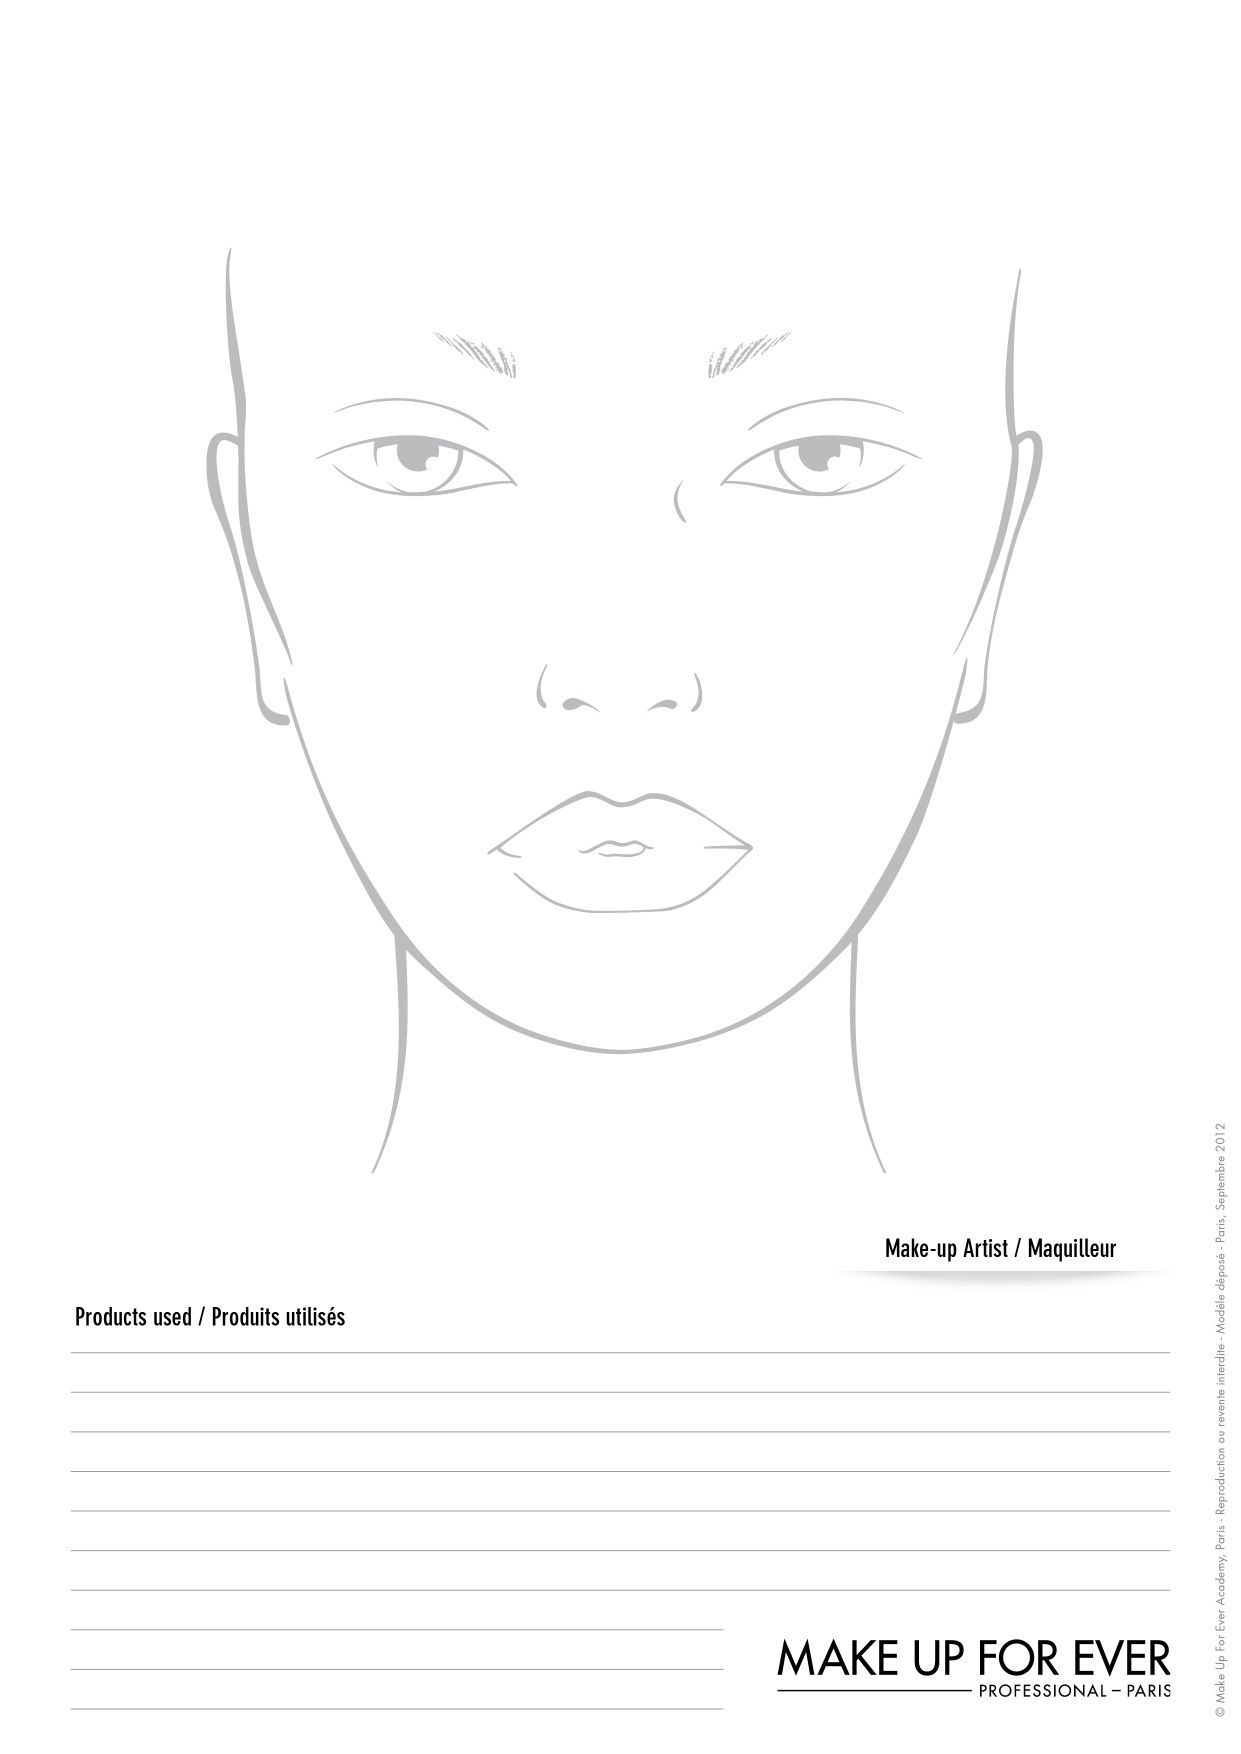 photo relating to Printable Face Charts named Printable Deal with Charts For Make-up Artists